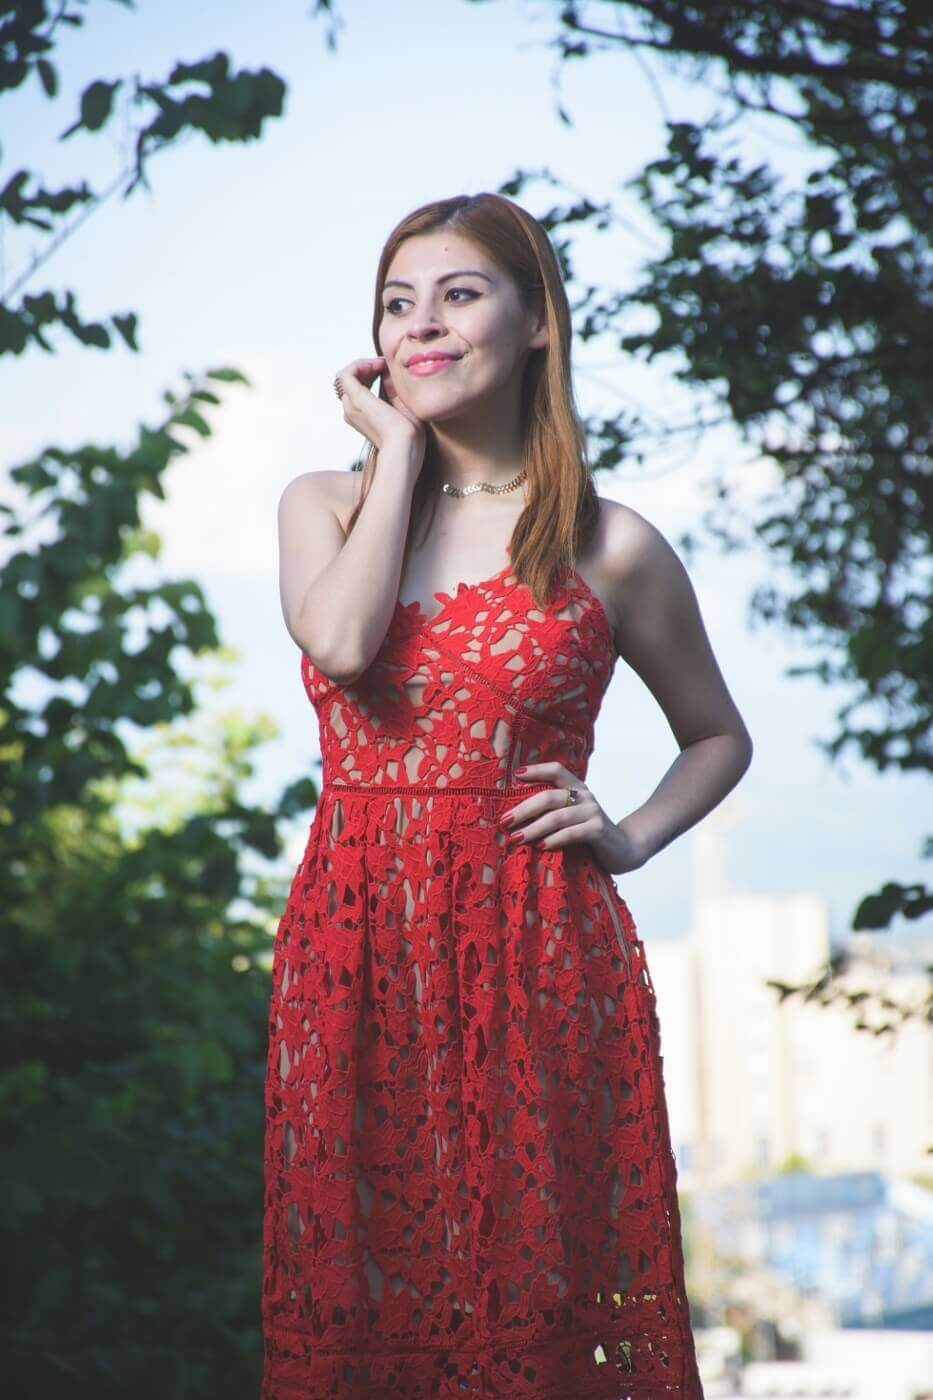 zaful red lace crochet midi lenght dress valentines day outfit ideas summer 2017 trends deborah ferrero style by deb07